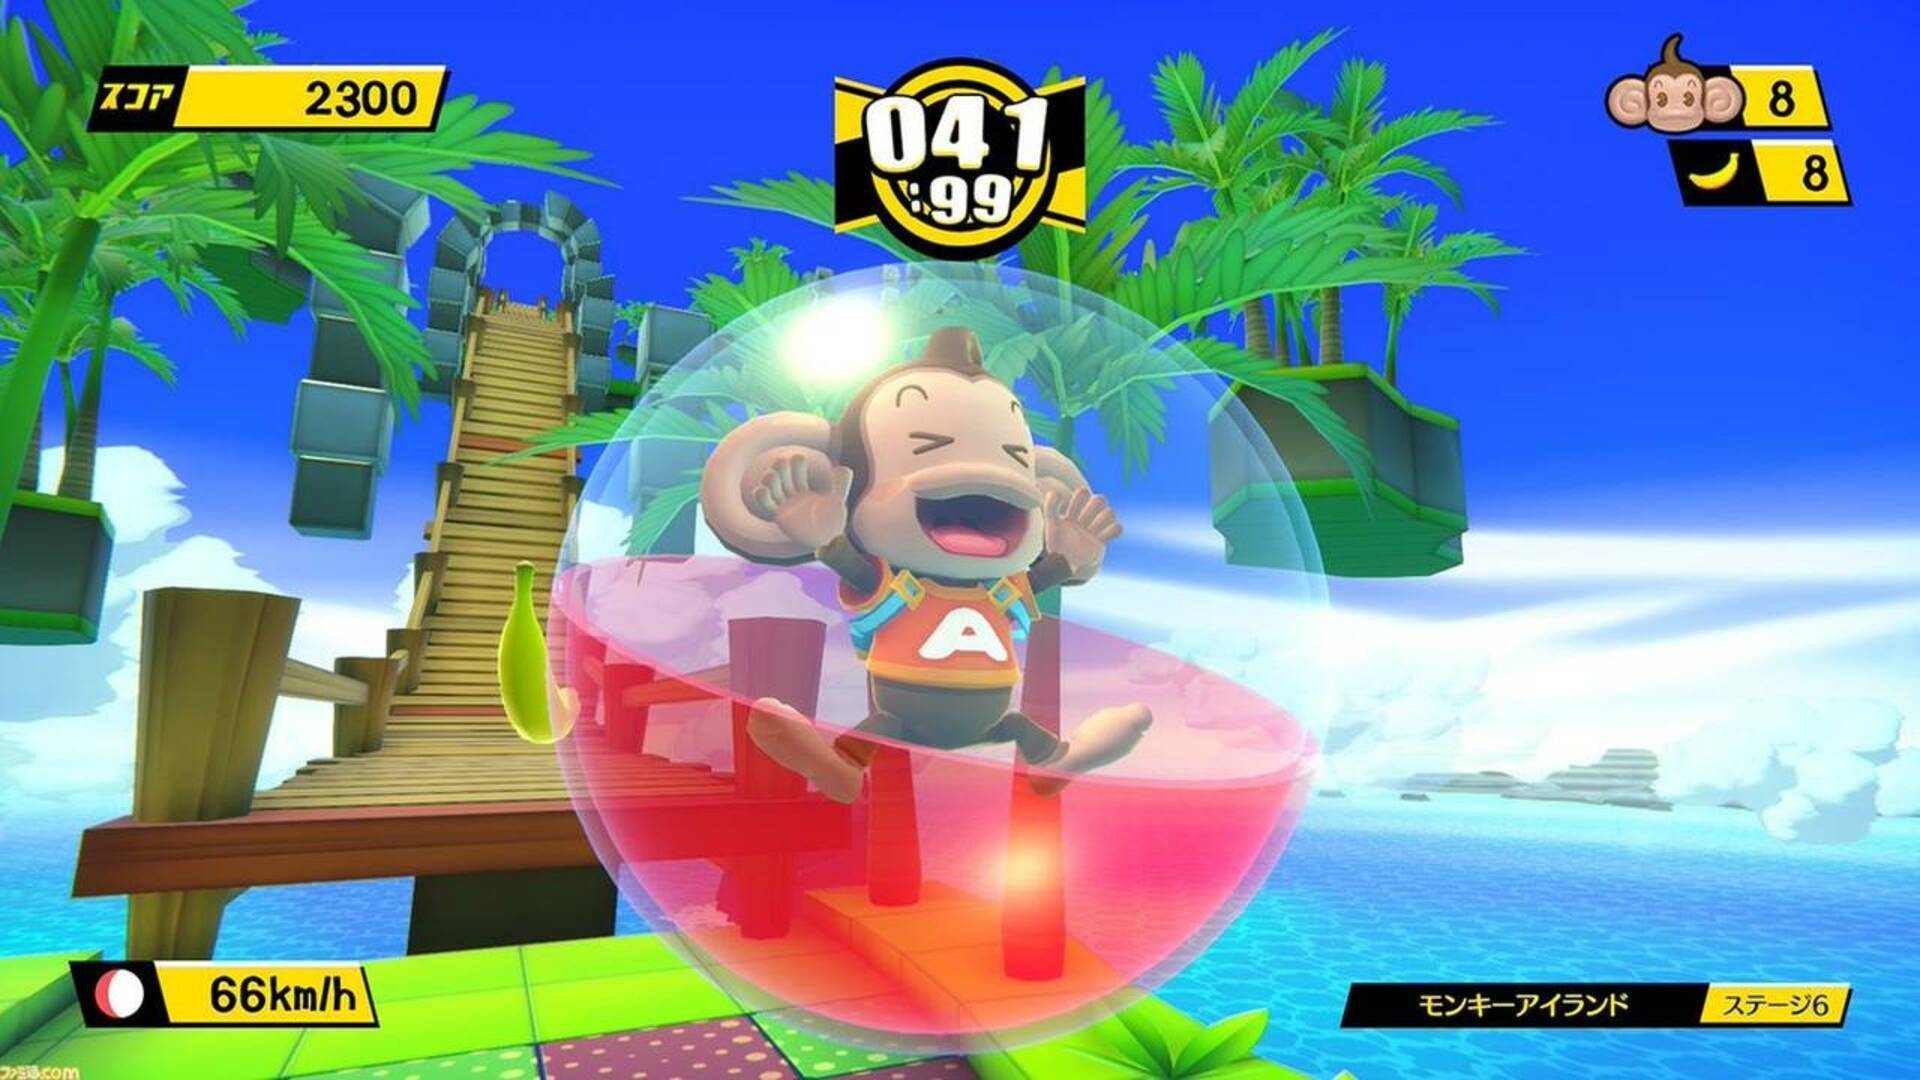 Super Monkey Ball is Back, But It's A Remake Of The Wii's Banana Blitz [Update]